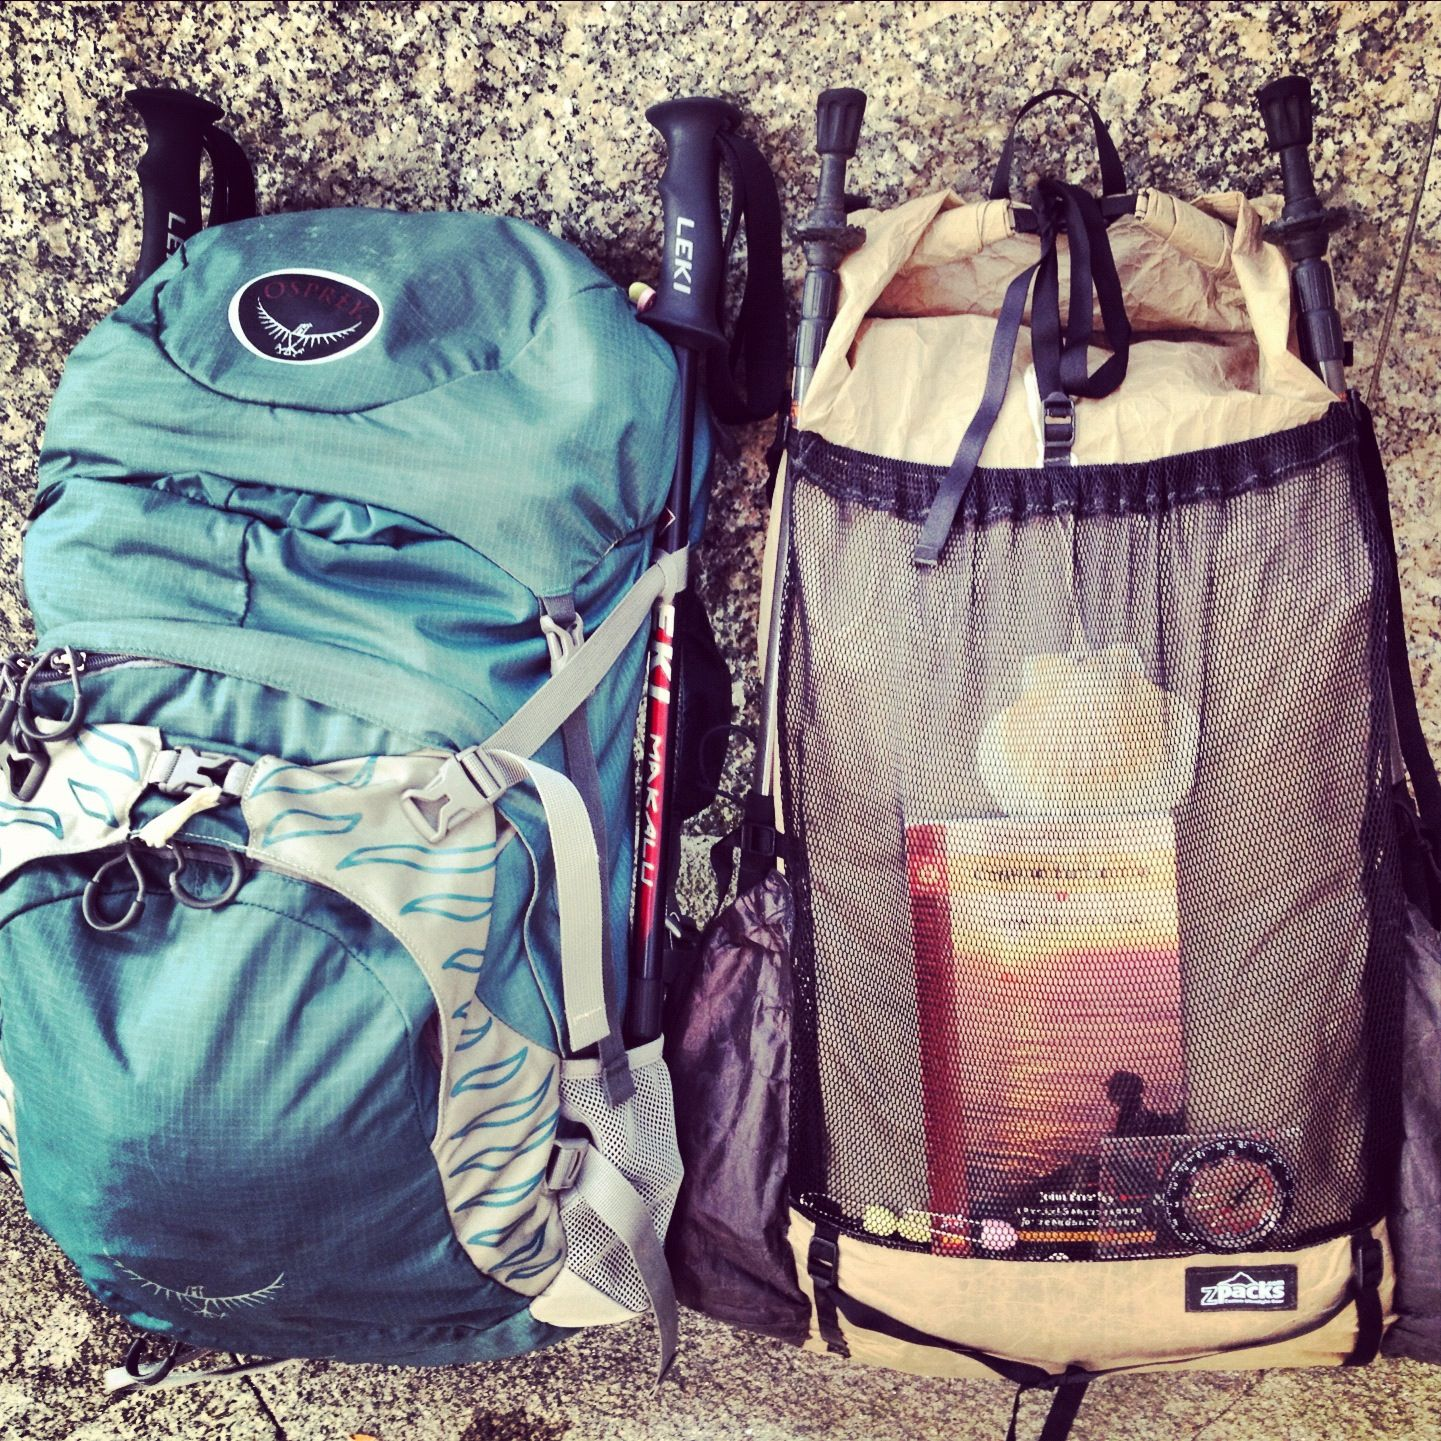 El Camino de Santiago: The Things We Carried